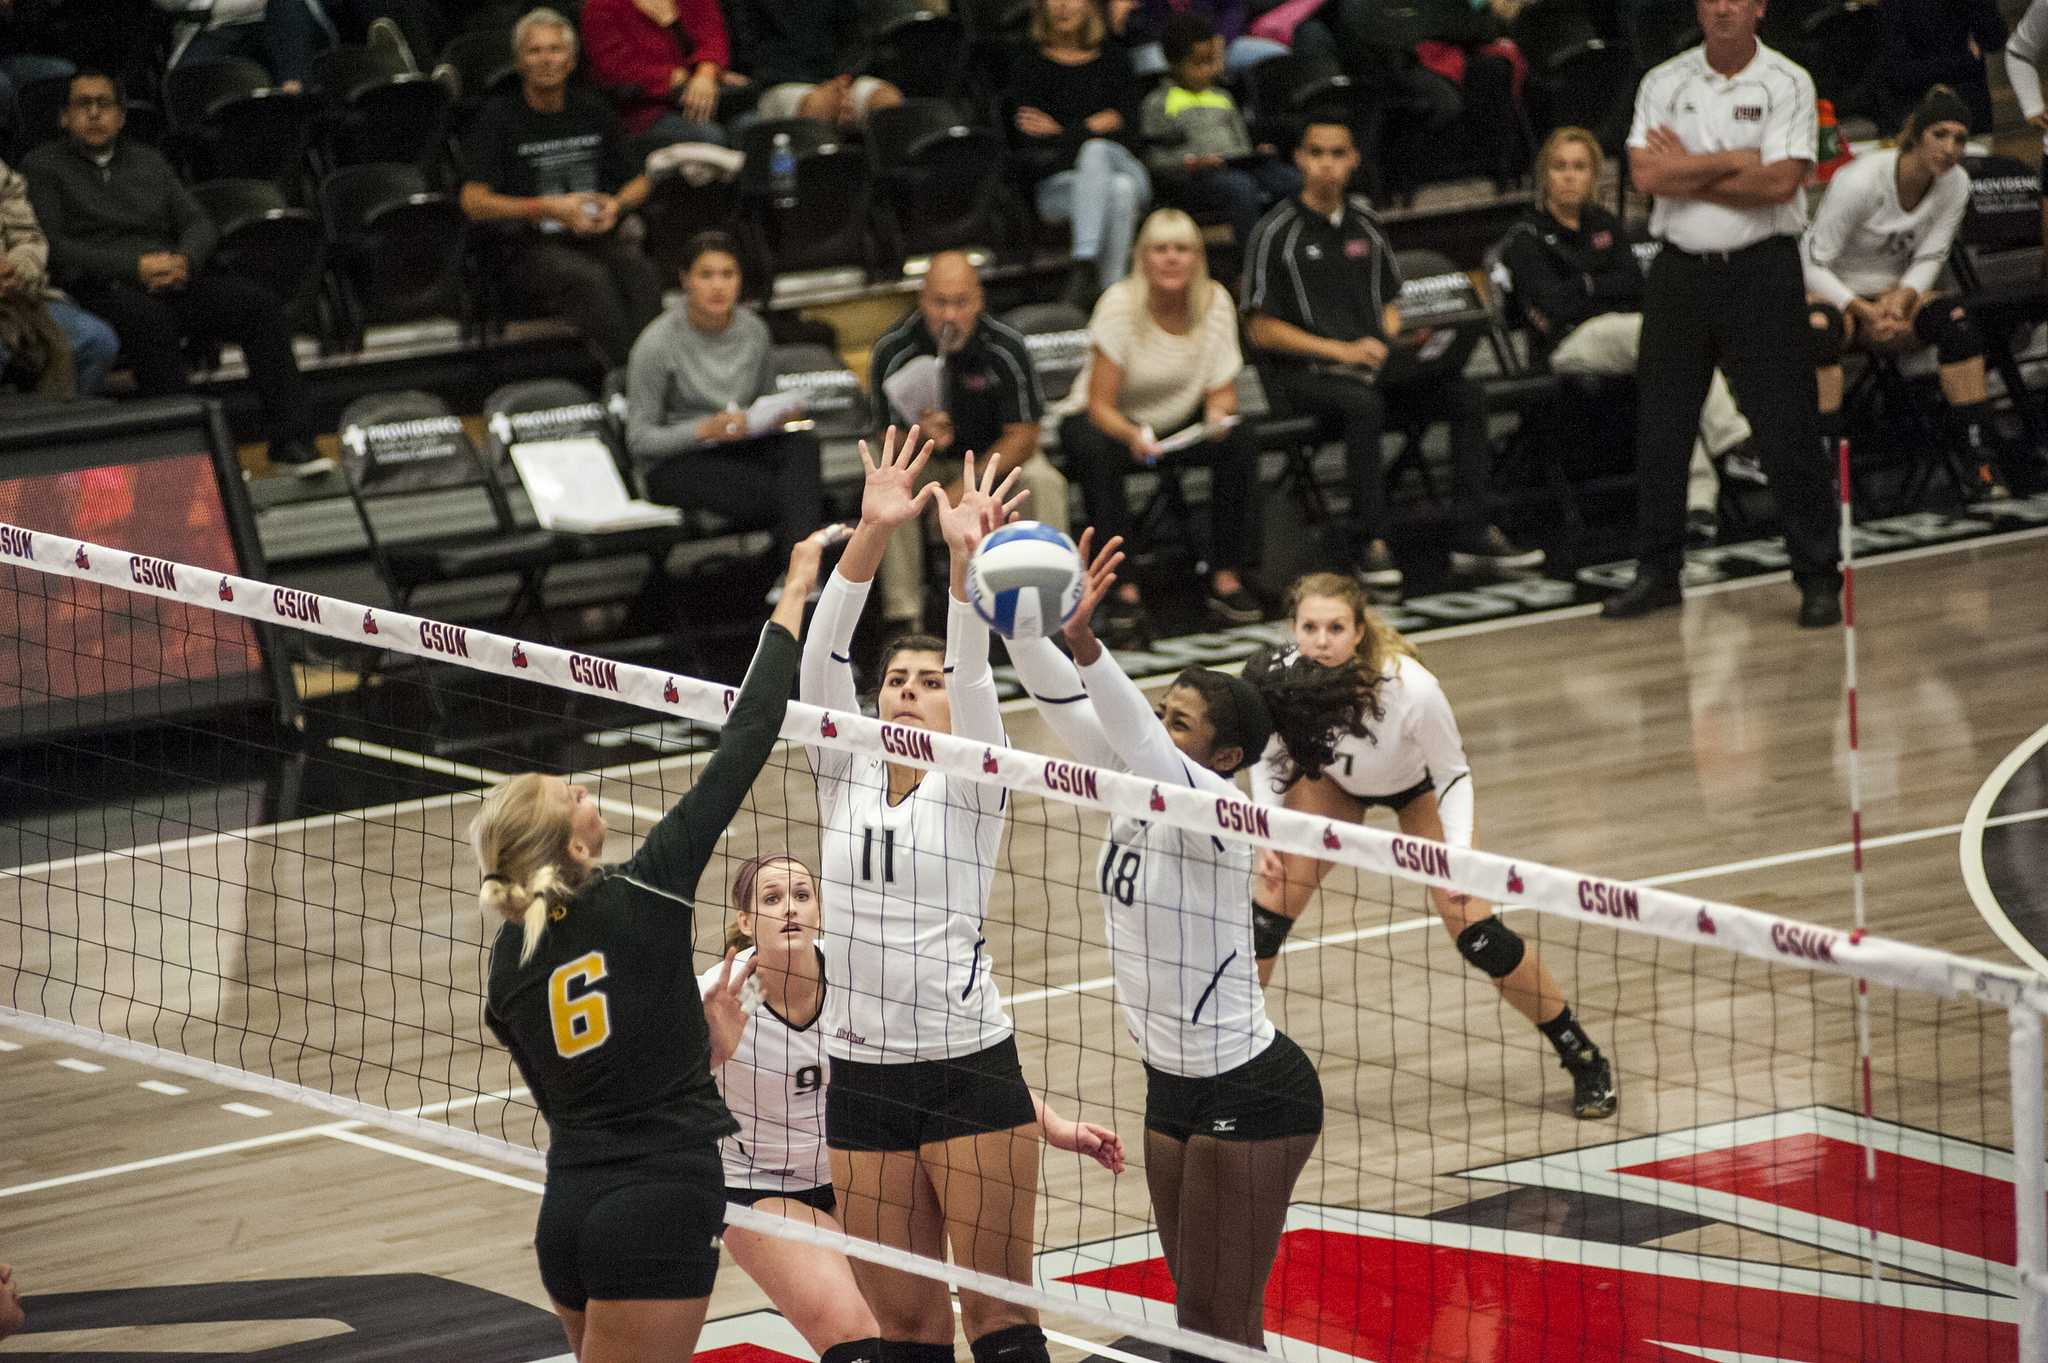 The+Matadors+could+not+start+the+season+on+a+strong+note%2C+losing+to+Lipscomb+University+in+five+sets.+Photo+credit%3A+File+Photo%2FThe+Sundial